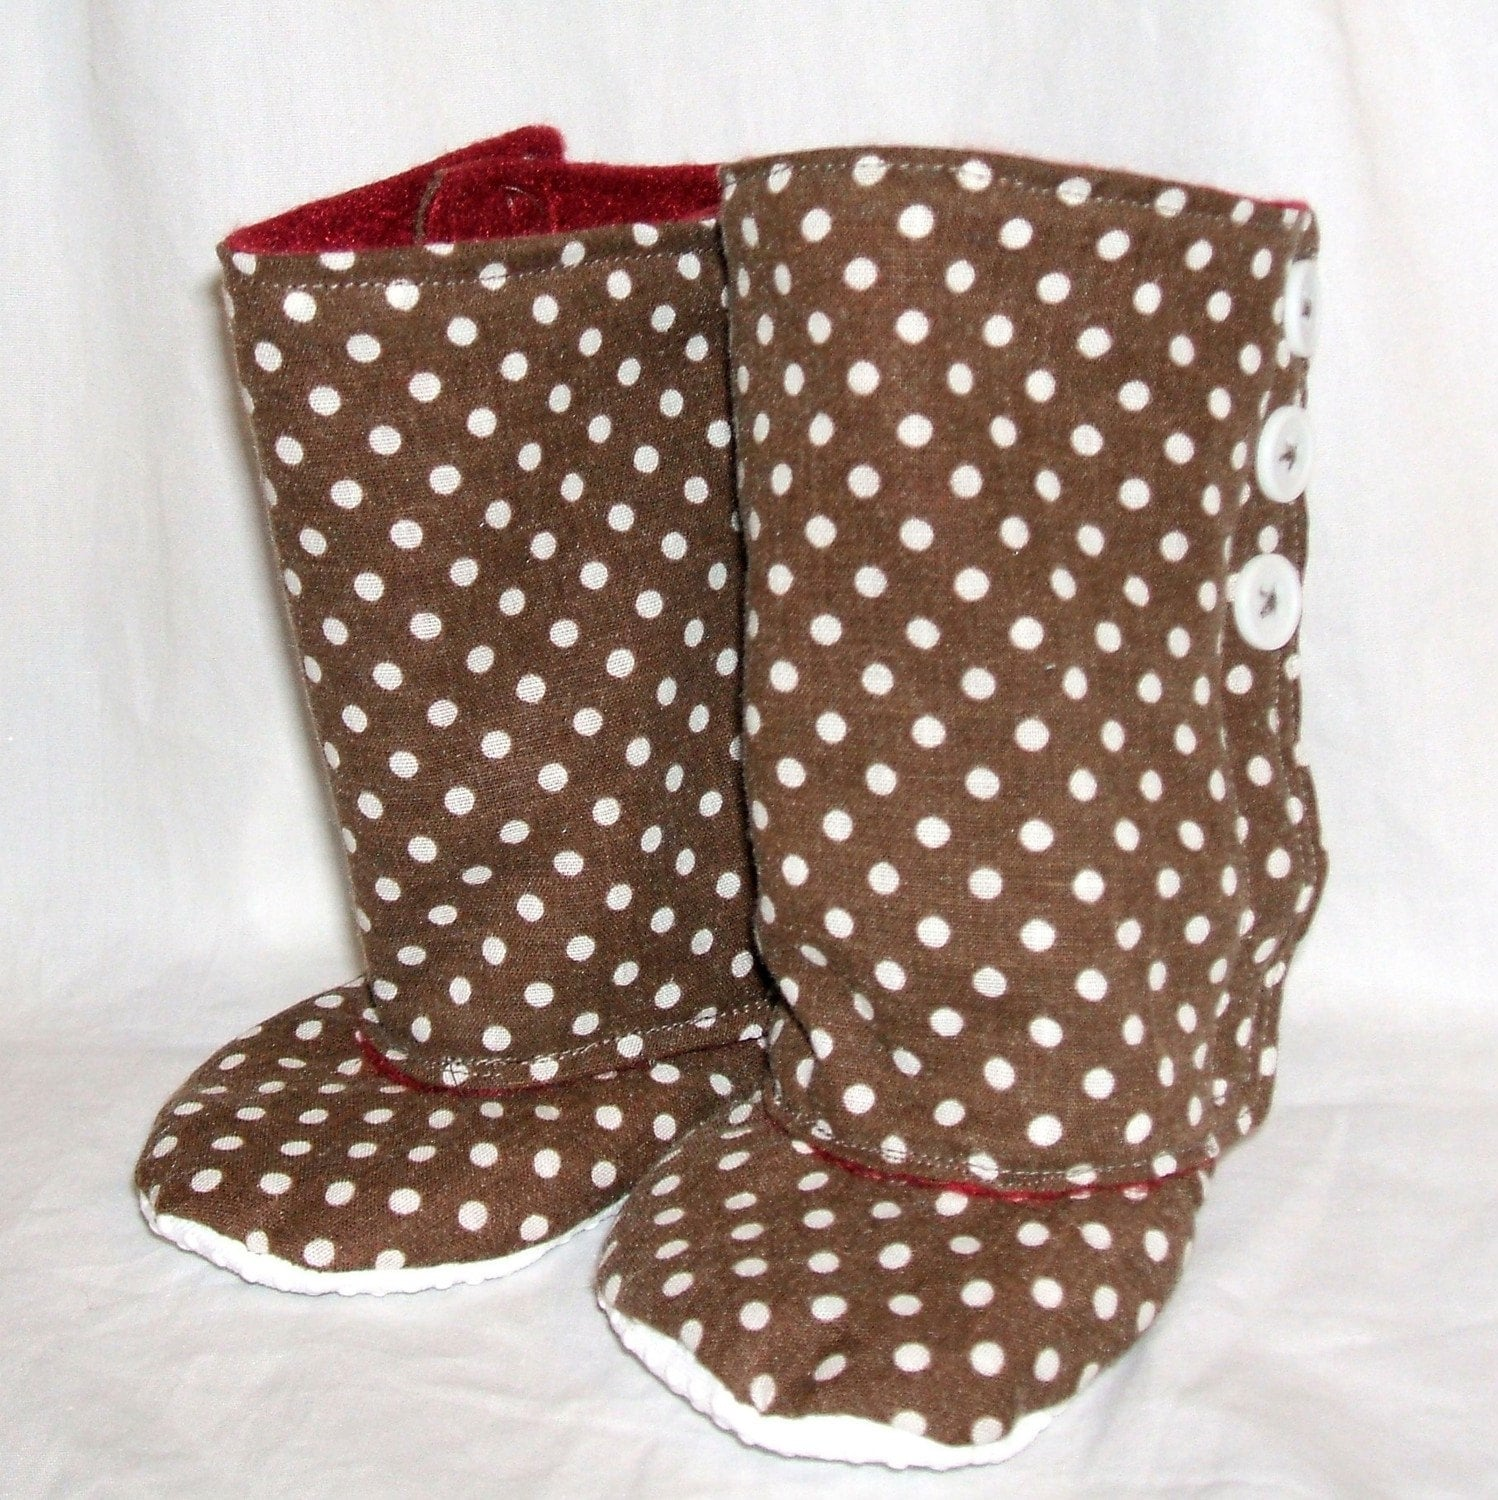 SALE- 3 Button Boots PDF Pattern & Tutorial in 4 Sizes